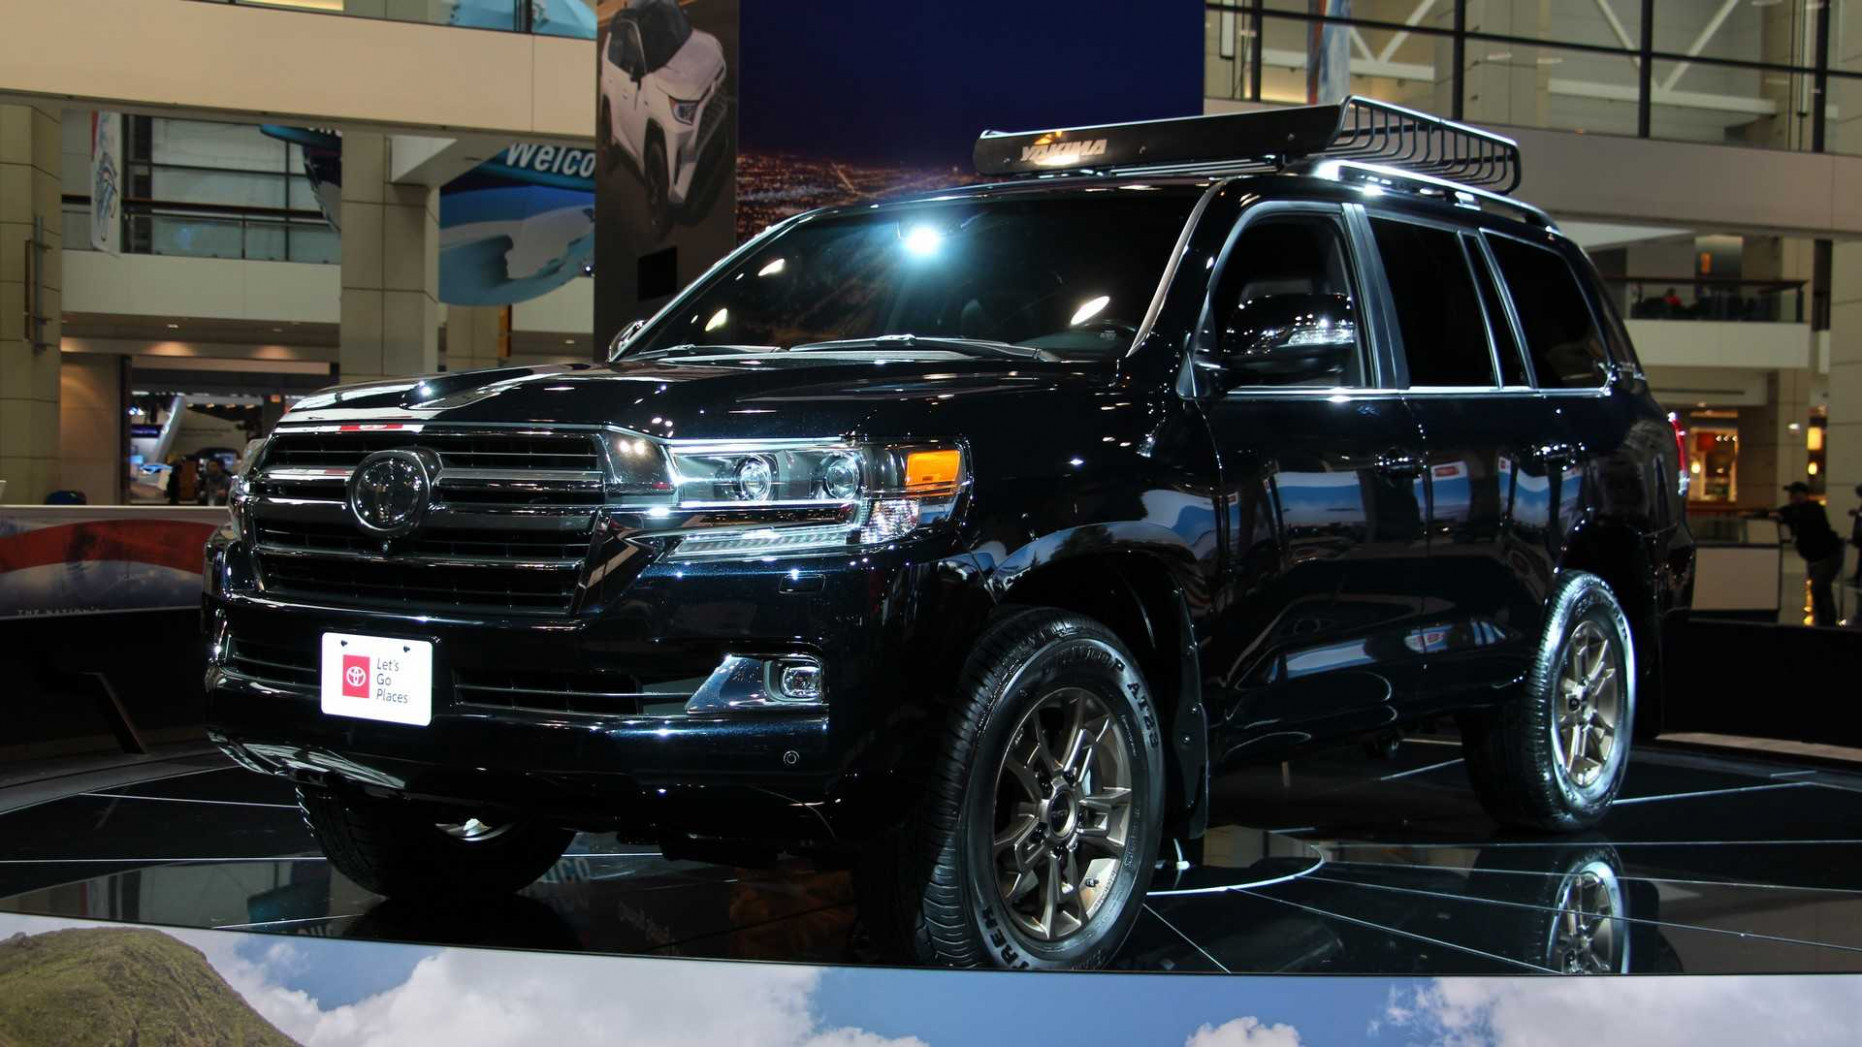 New Toyota Land Cruiser Rumored For August Debut With Hybrid Power